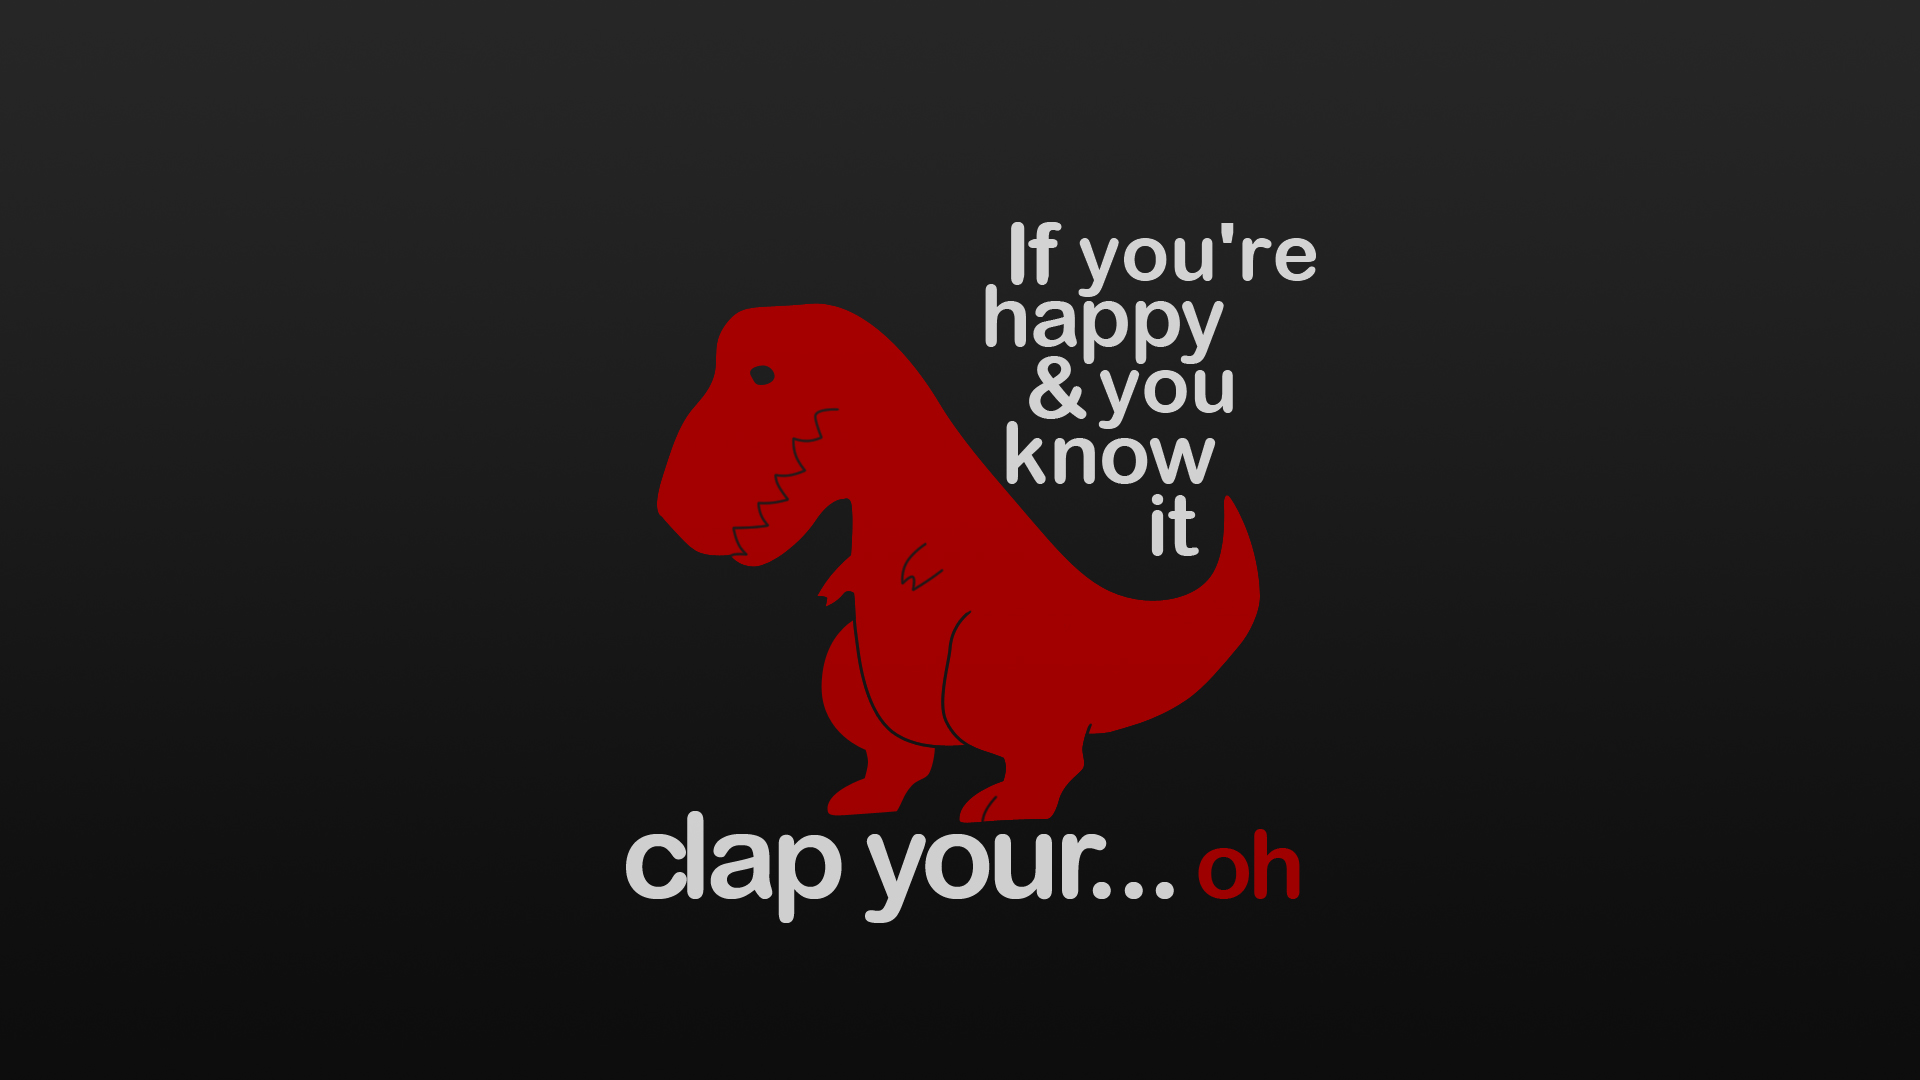 Funny Dinosaur Tattoos 37 Cool Hd Wallpaper   Funnypictureorg 1920x1080